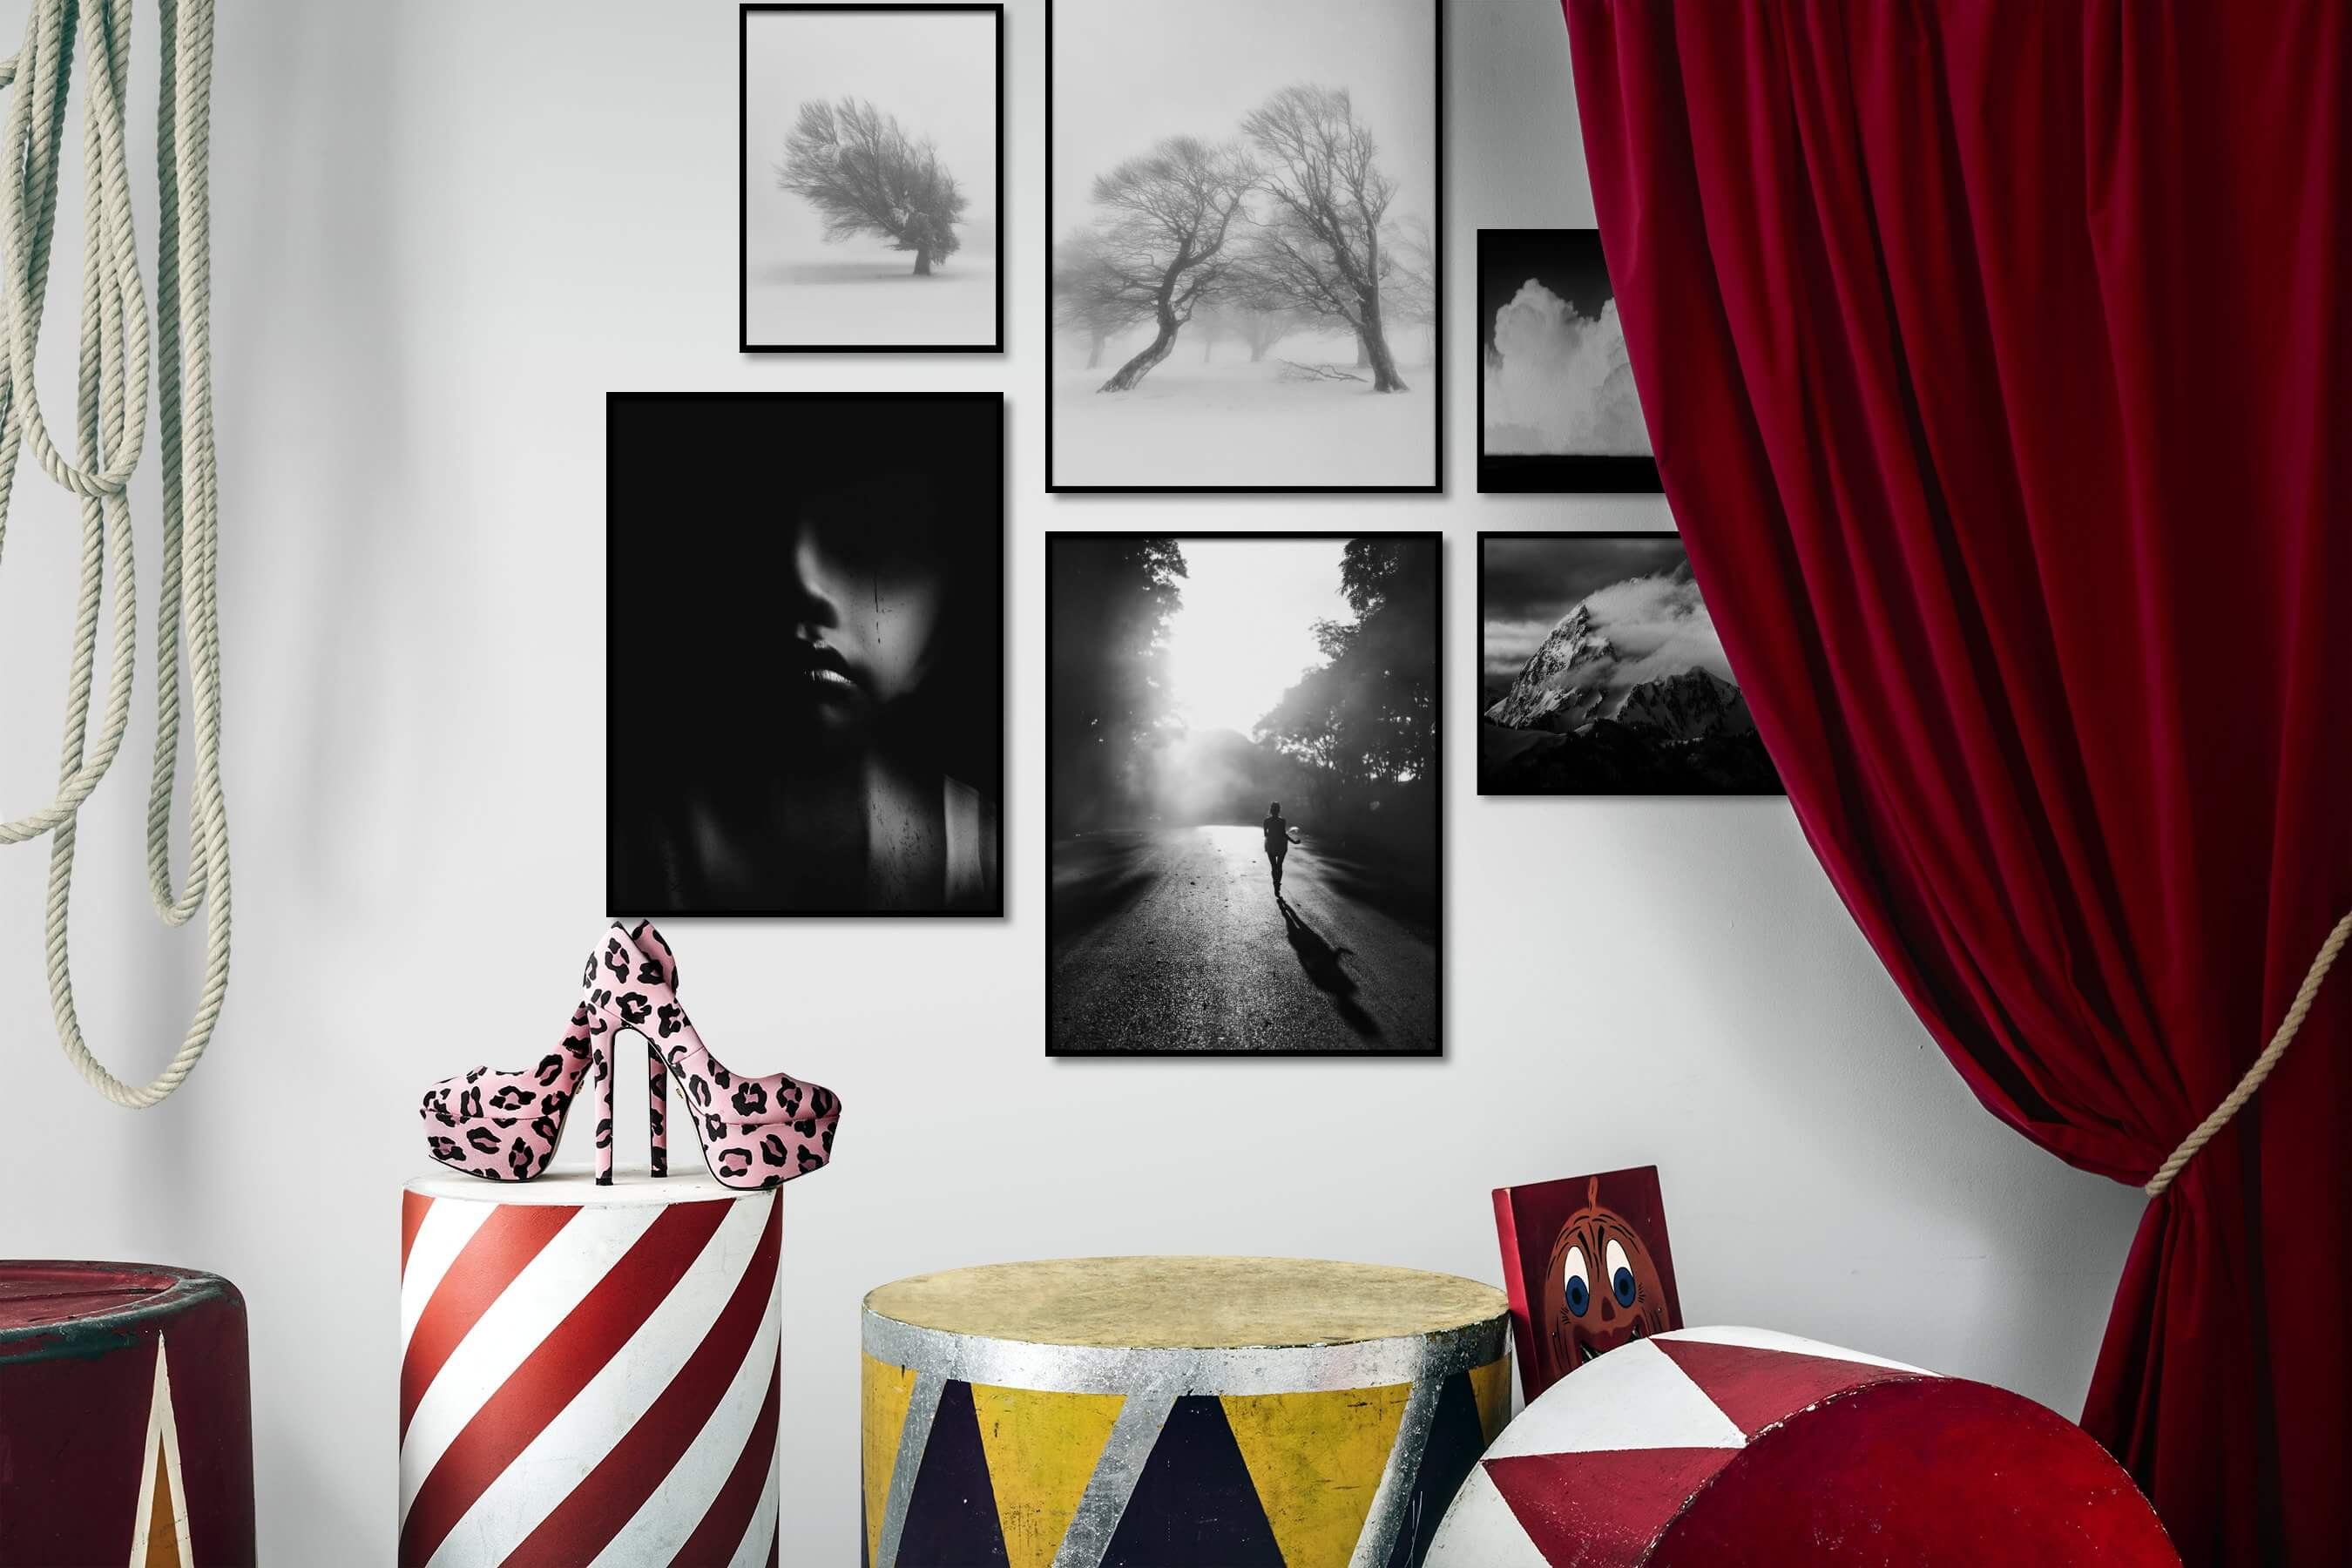 Gallery wall idea with six framed pictures arranged on a wall depicting Black & White, Bright Tones, For the Minimalist, Country Life, For the Moderate, Artsy, Dark Tones, Fashion & Beauty, Mindfulness, and Nature